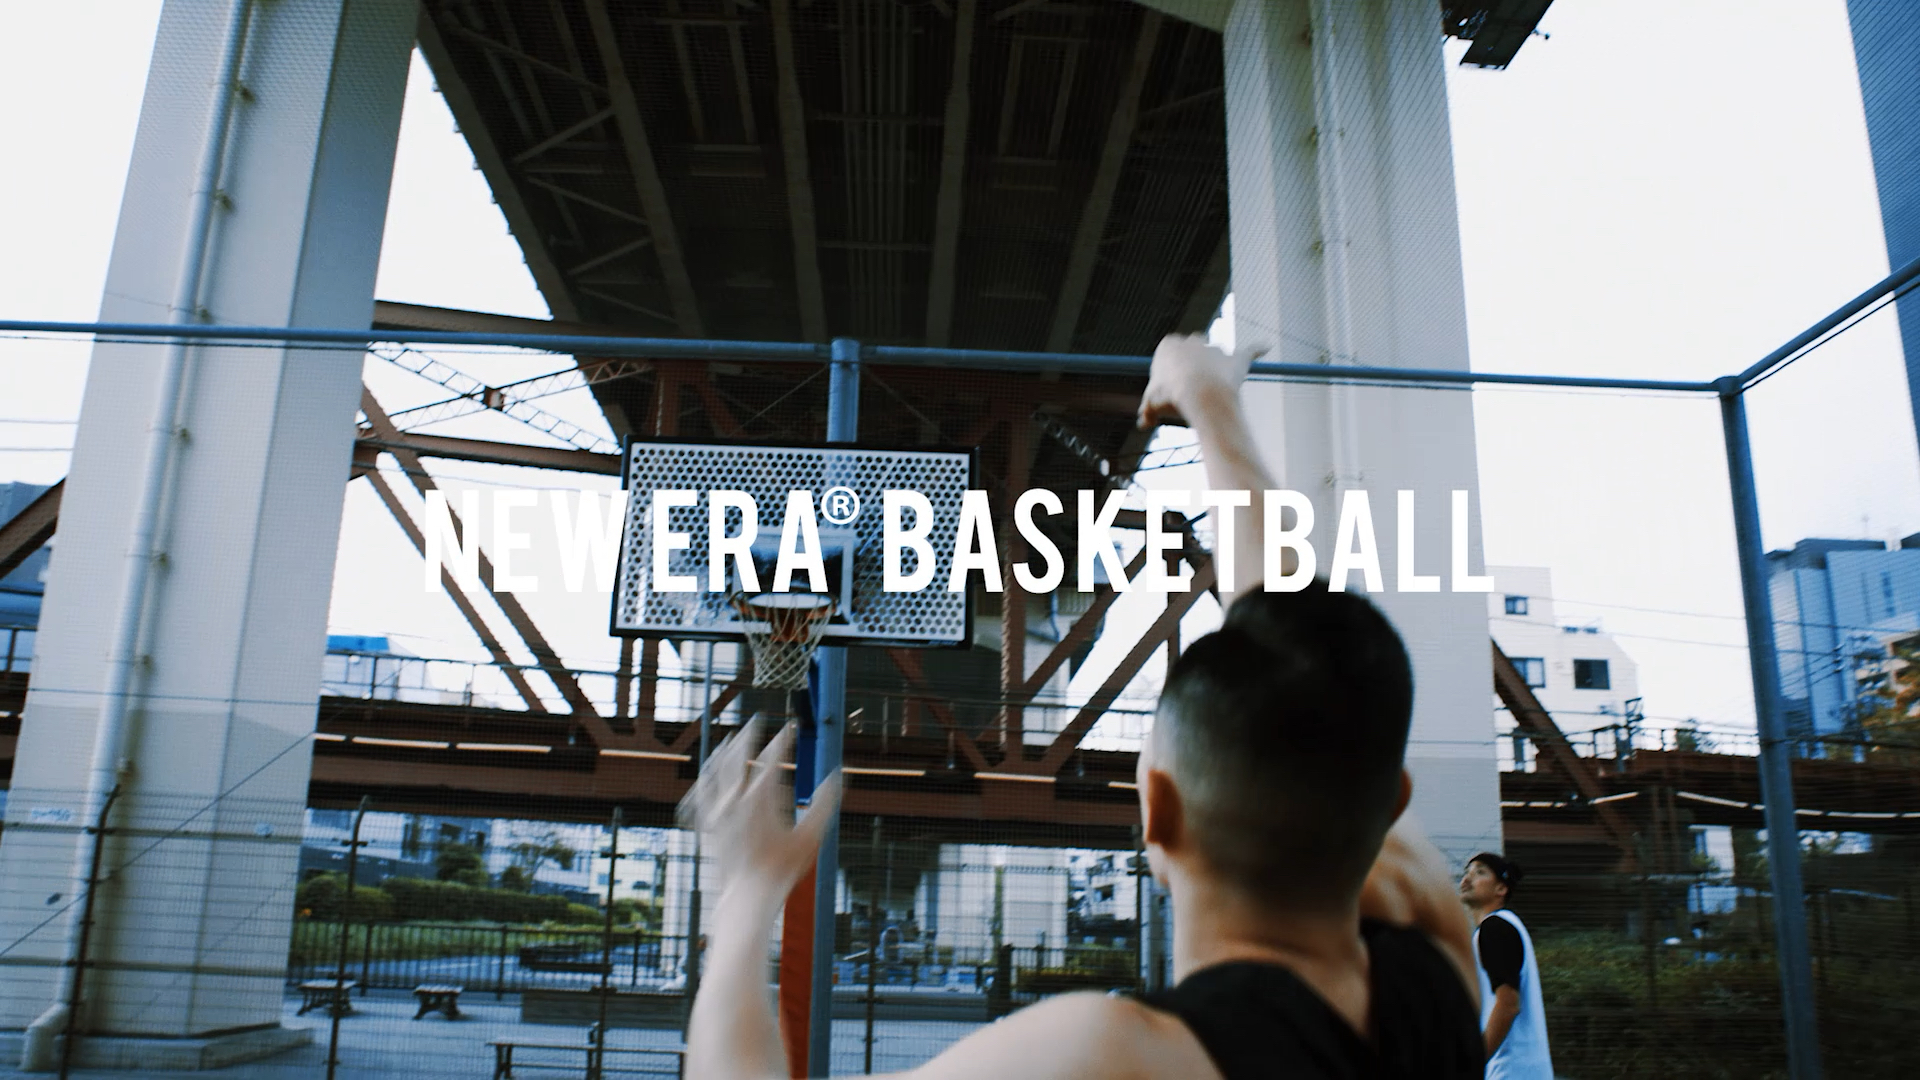 NEW ERA BASKETBALL 2020